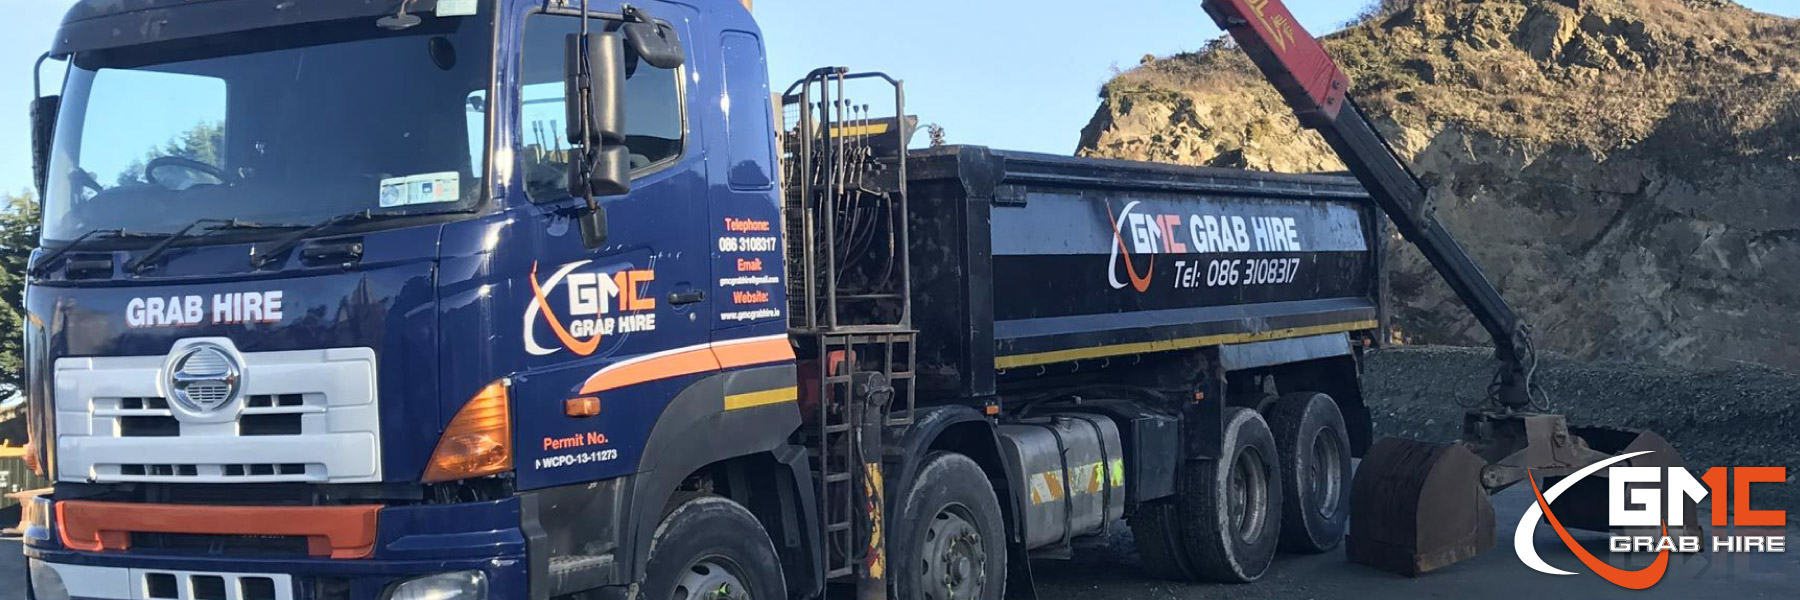 GMC Grab Hire Dublin